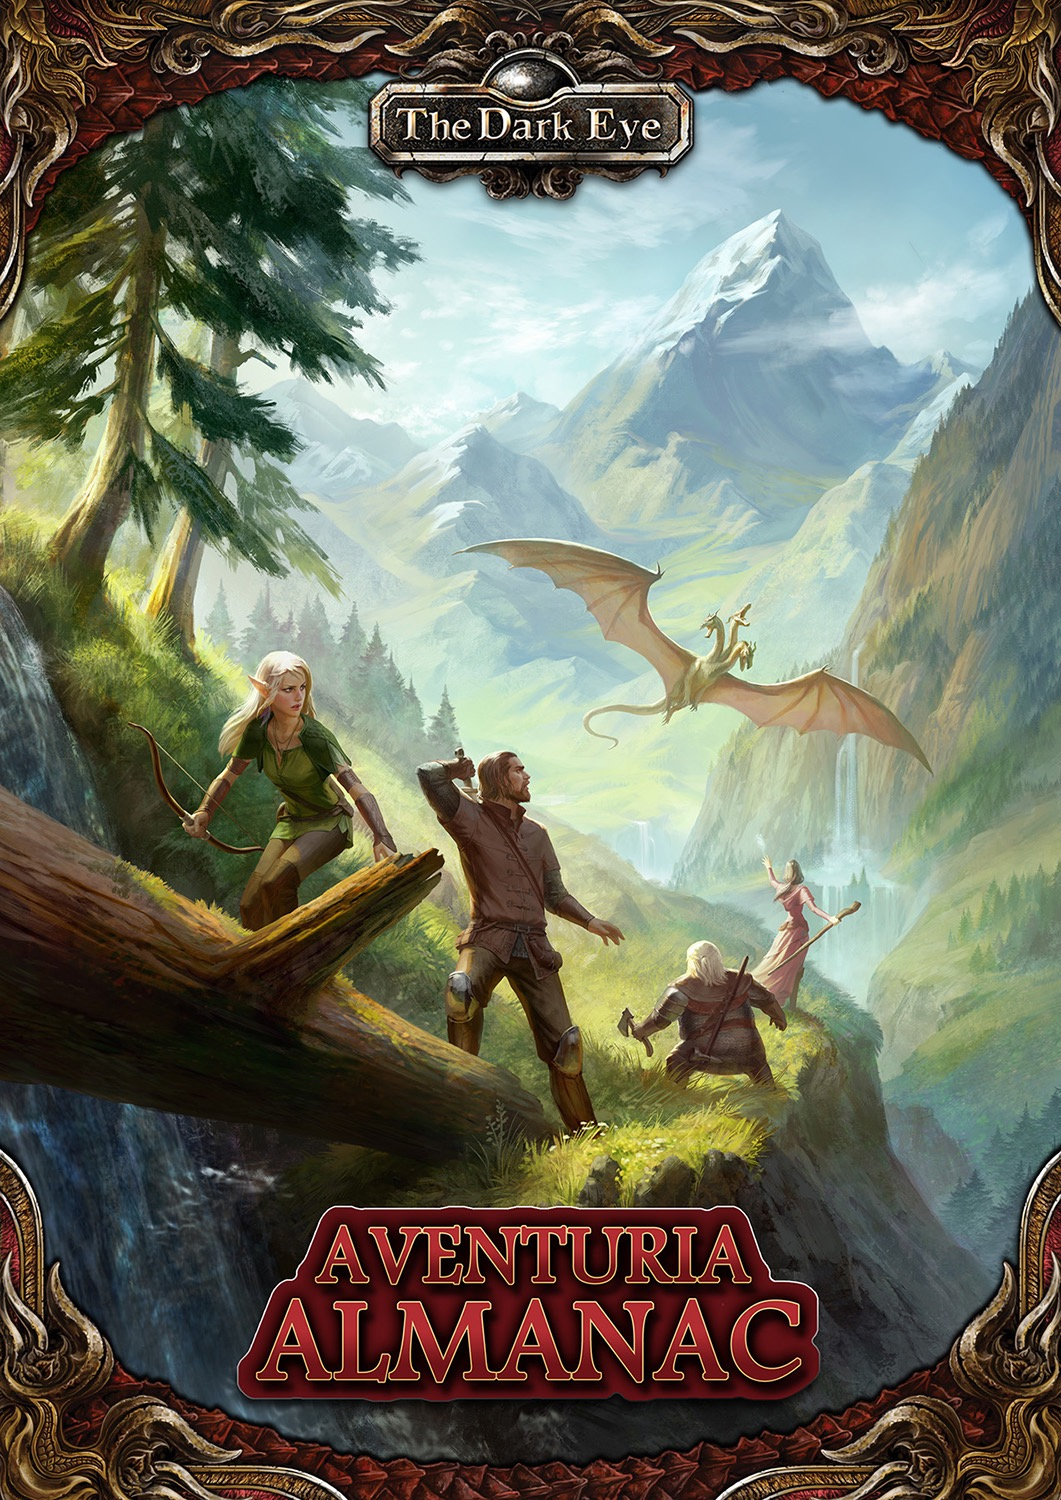 Aventuria Almanac Hardcover: The Dark Eye RPG (T.O.S.) -  Ulisses Spiele